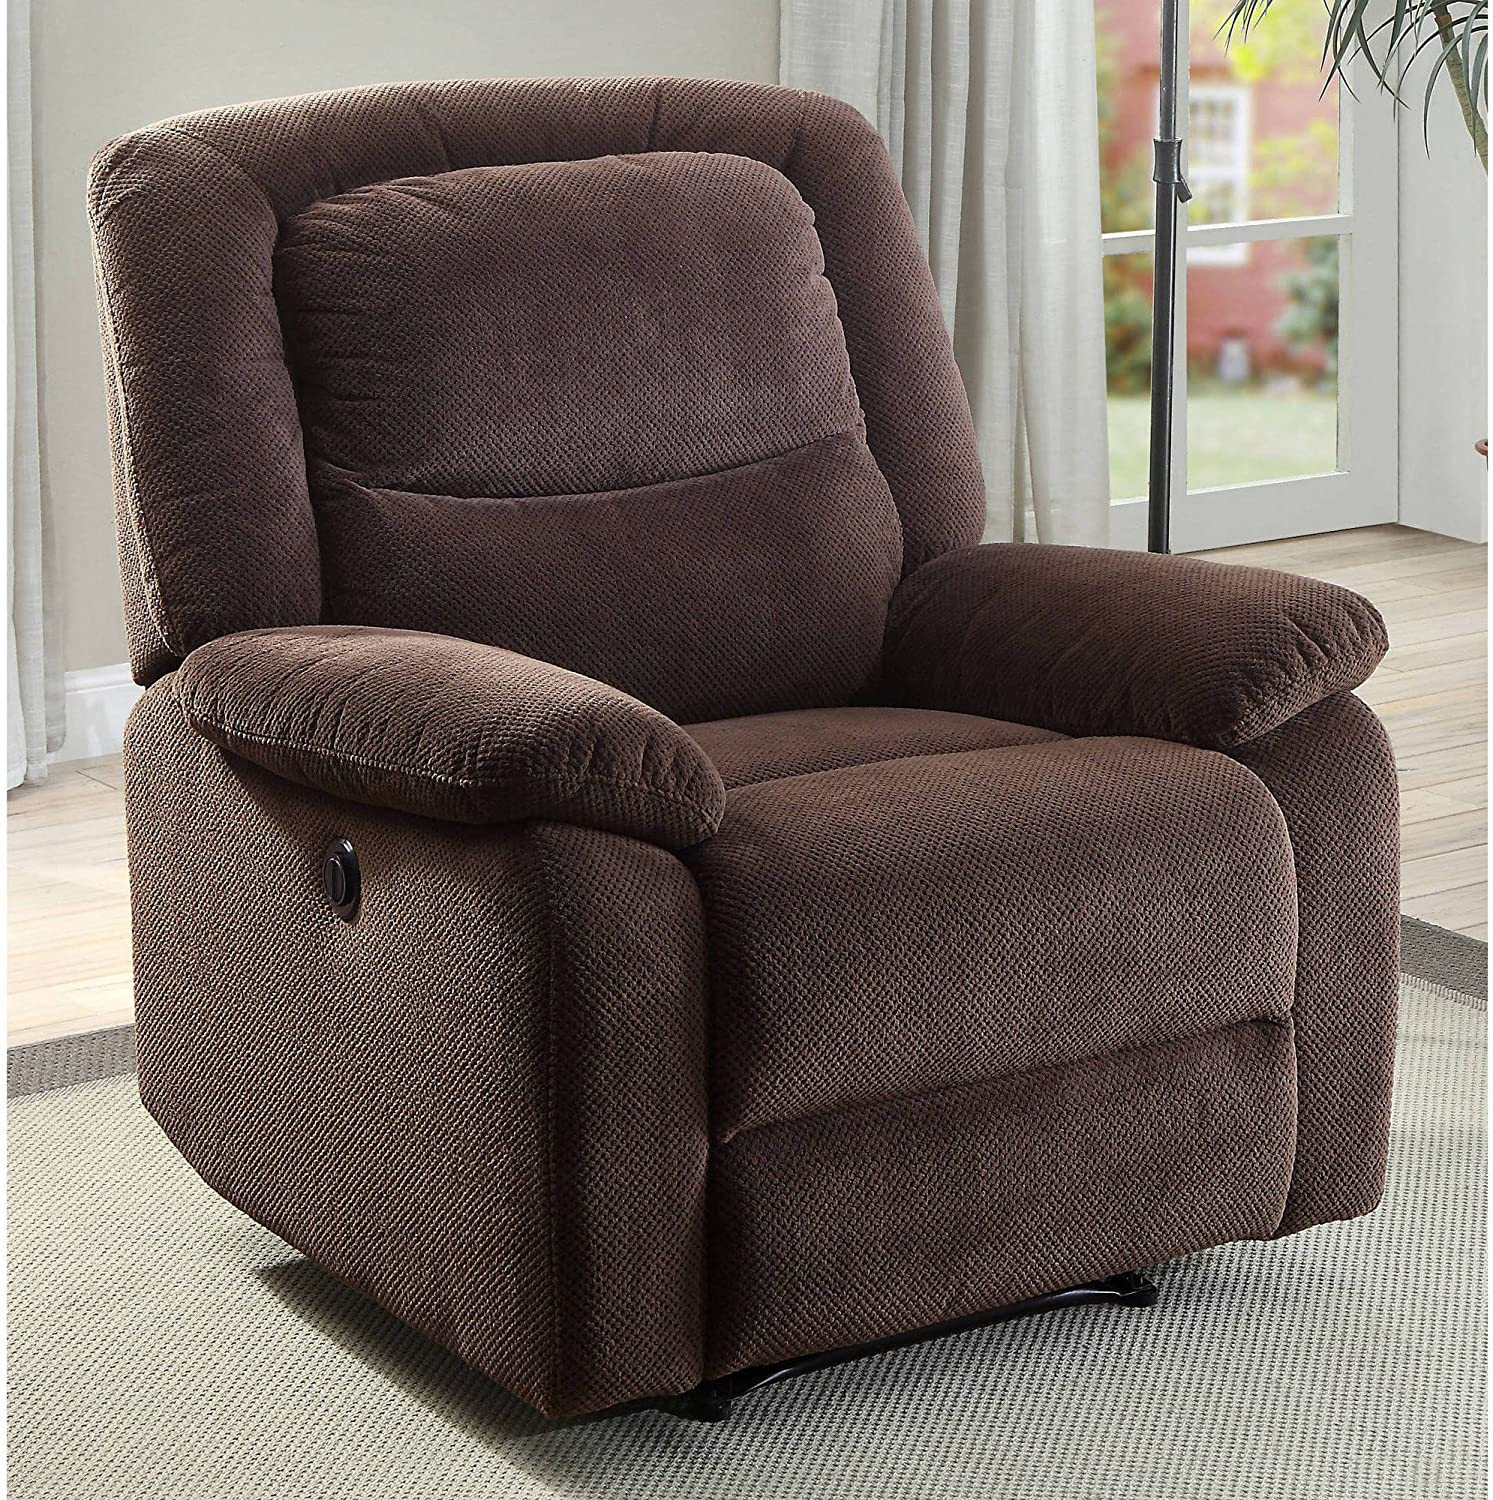 Serta Power Recliner, Brown 37.75 W x 38 D x 41 H